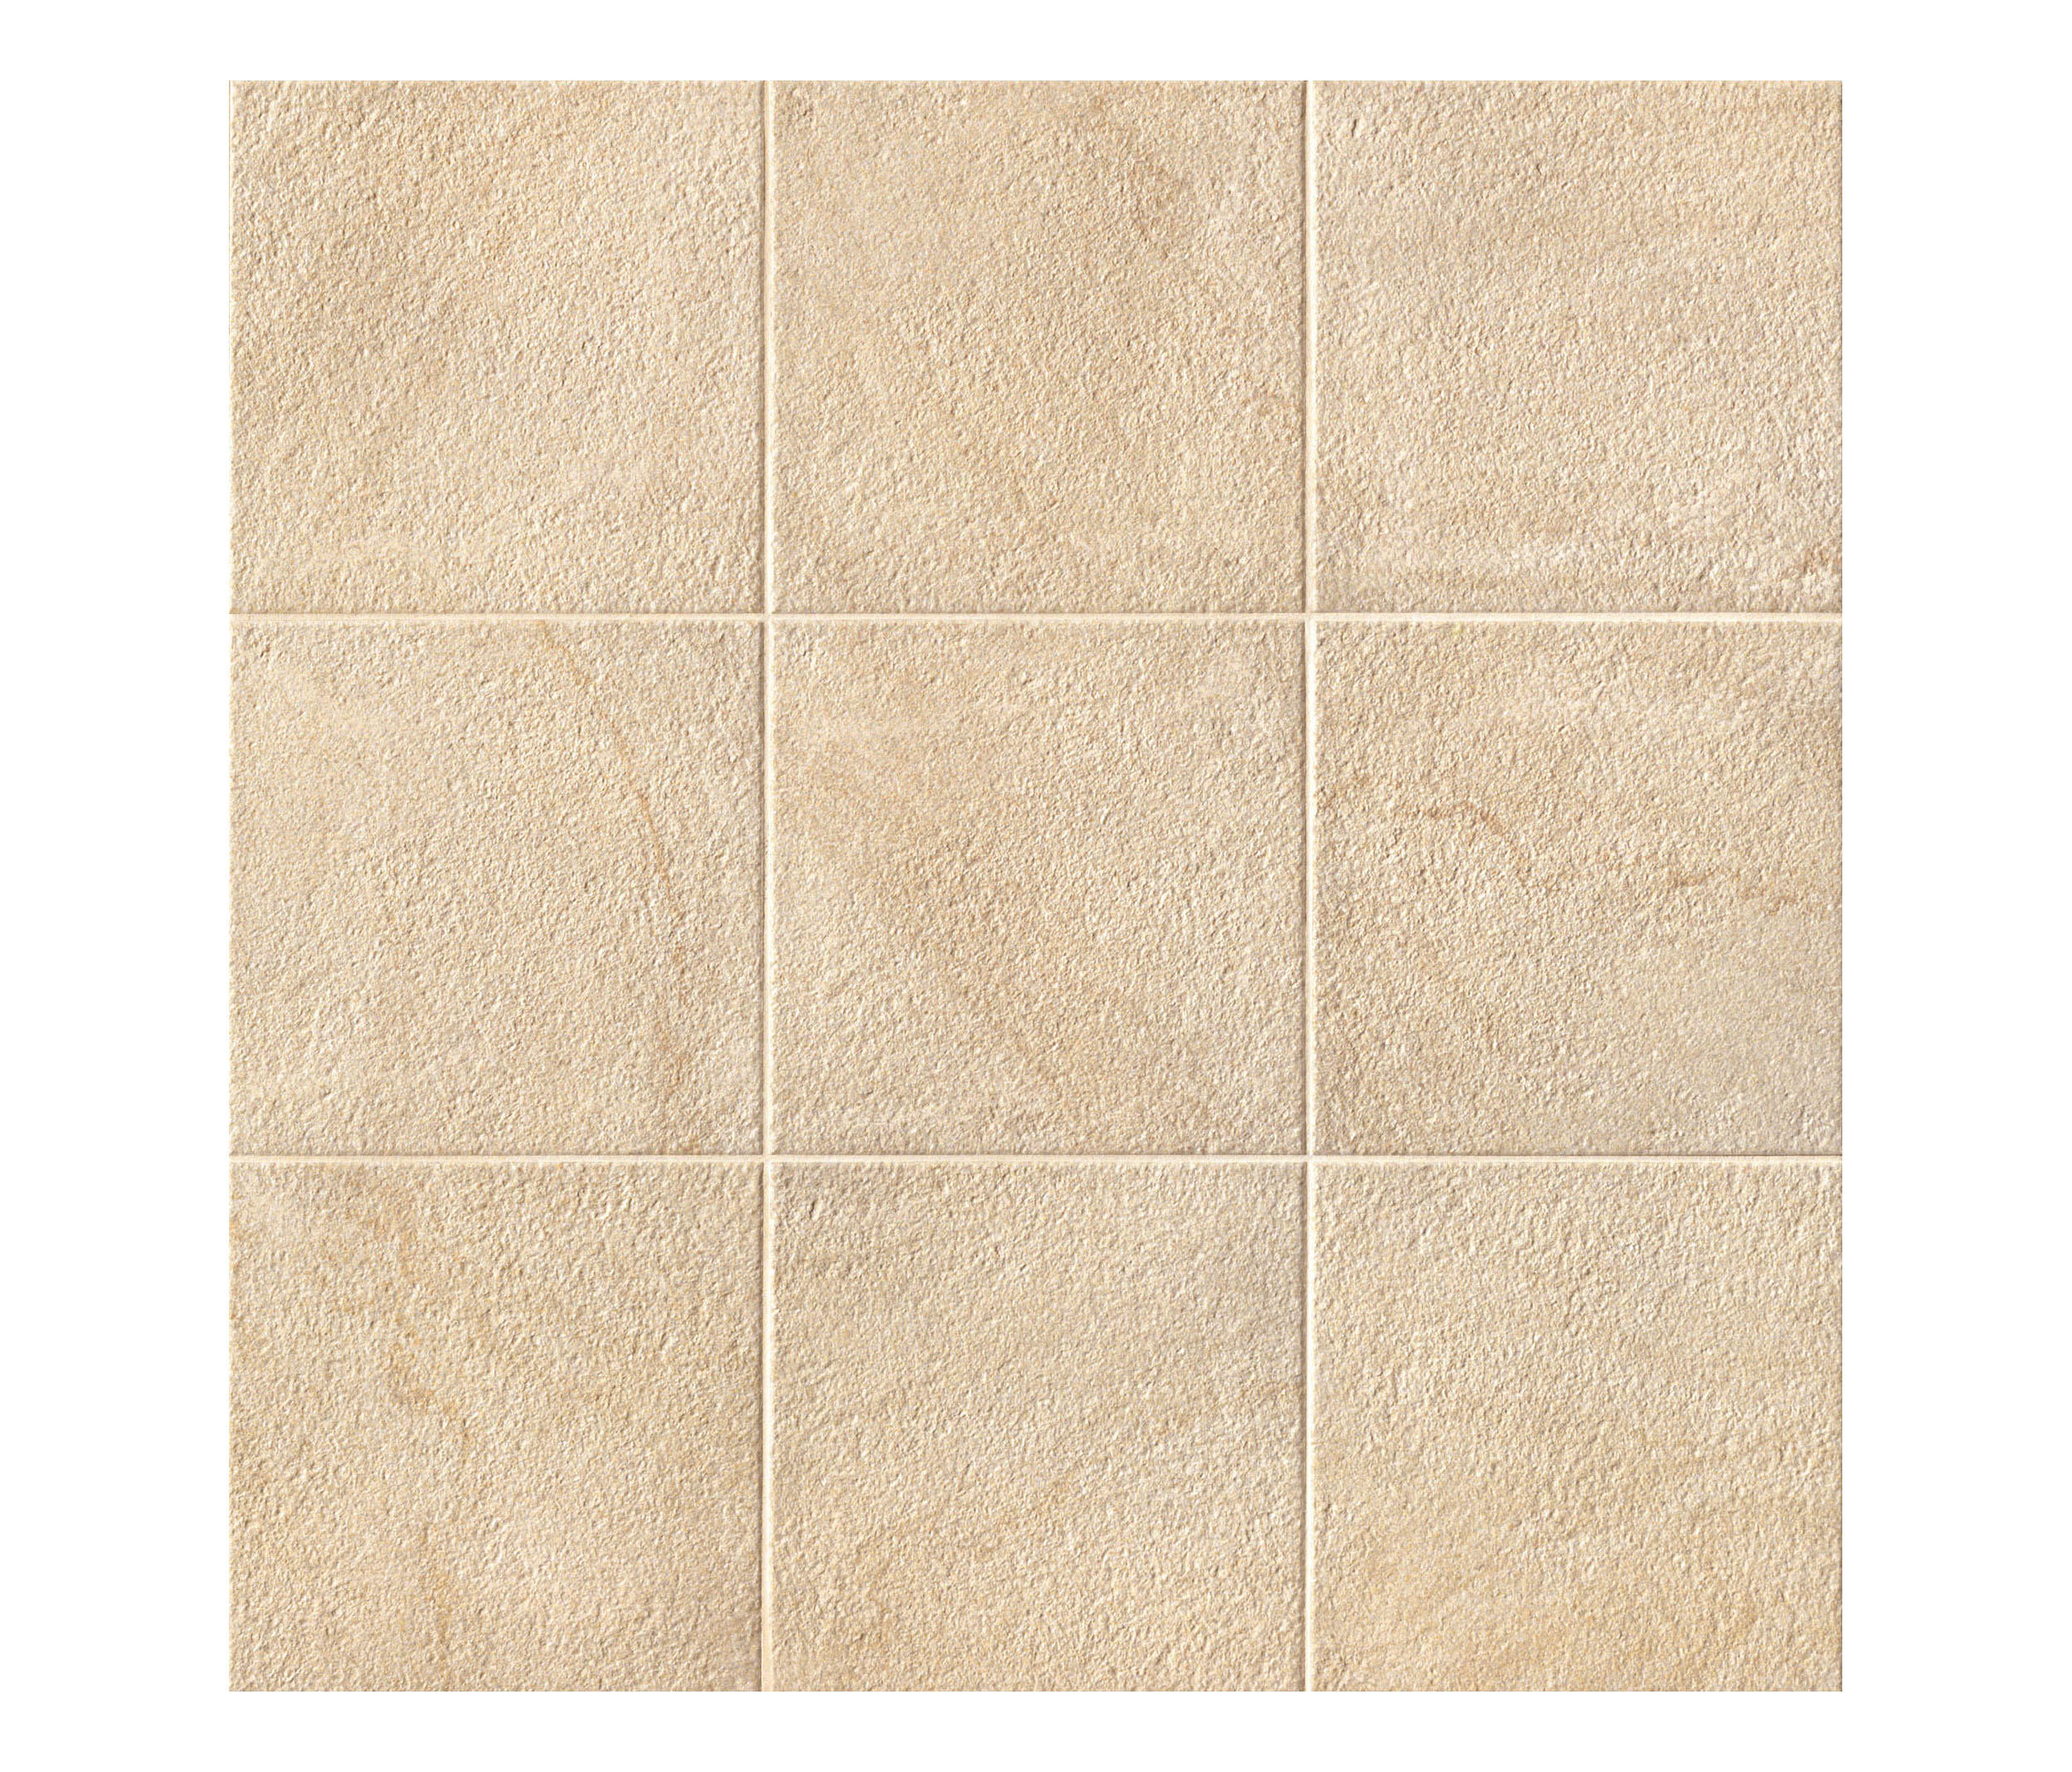 Stonetrack Beige Ceramic Tiles From Ceramiche Supergres